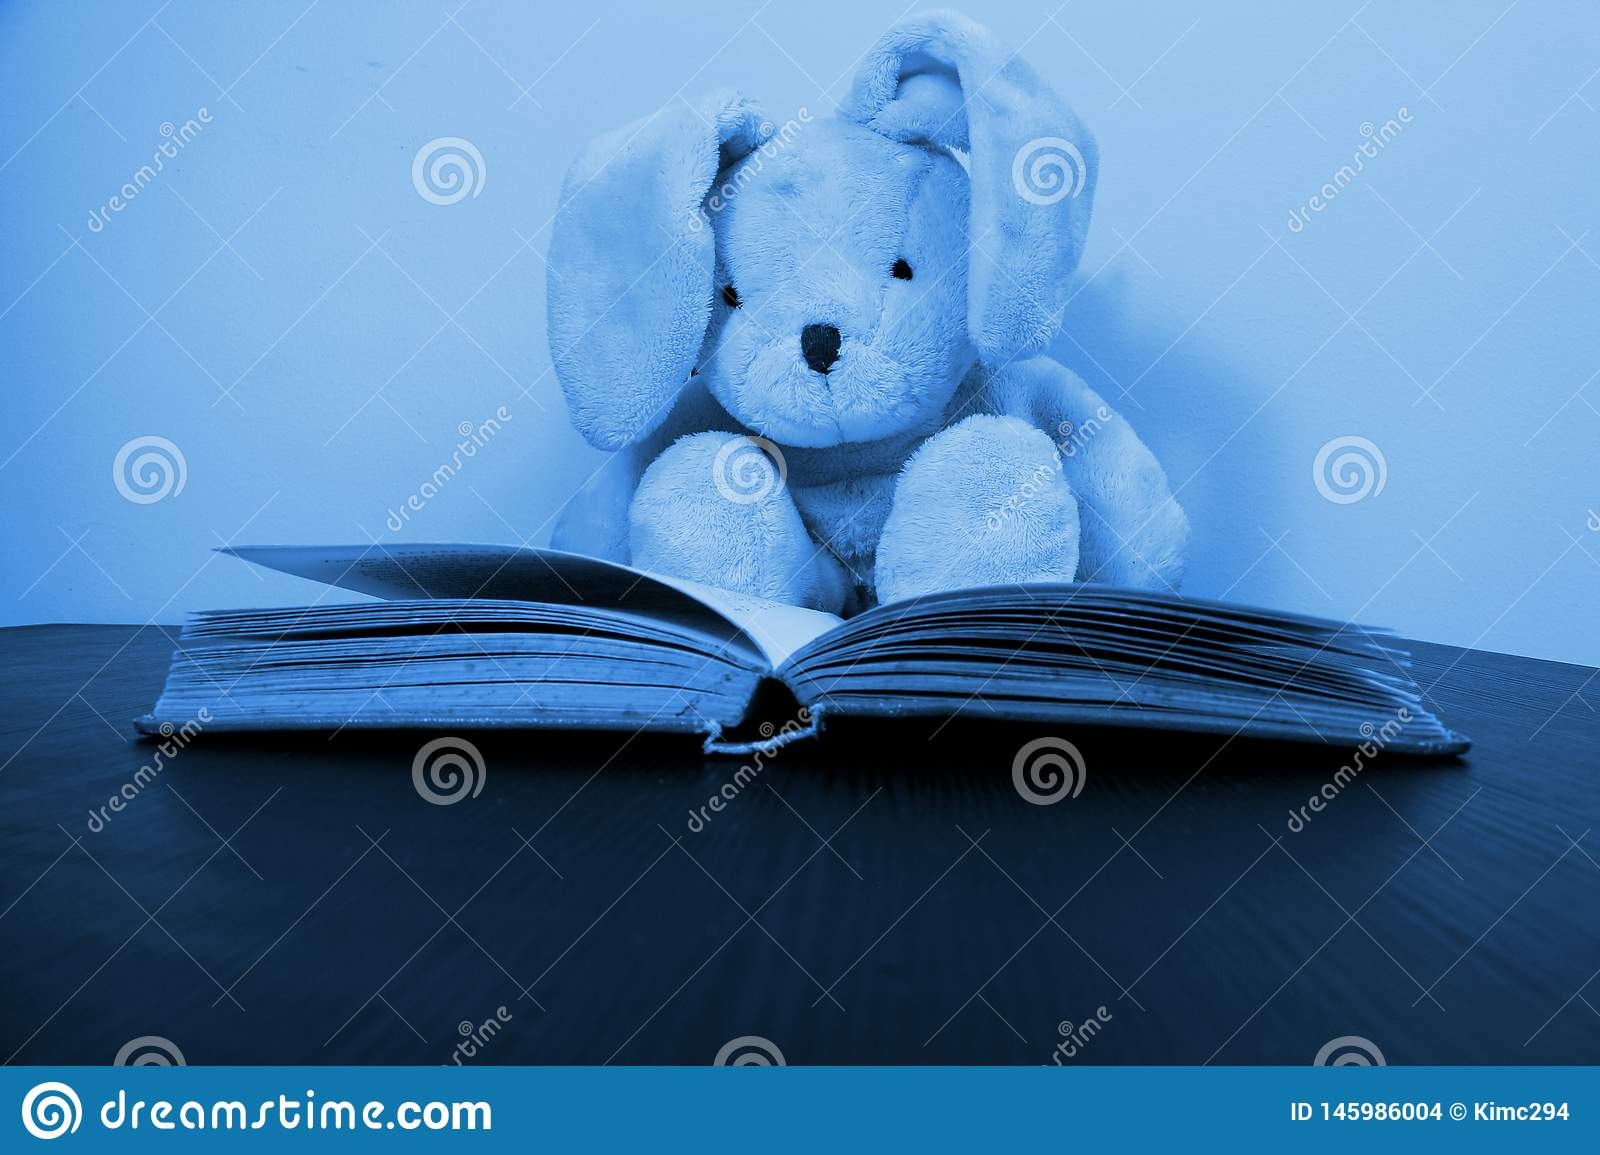 A rabbit plush toy sitting behind an open book